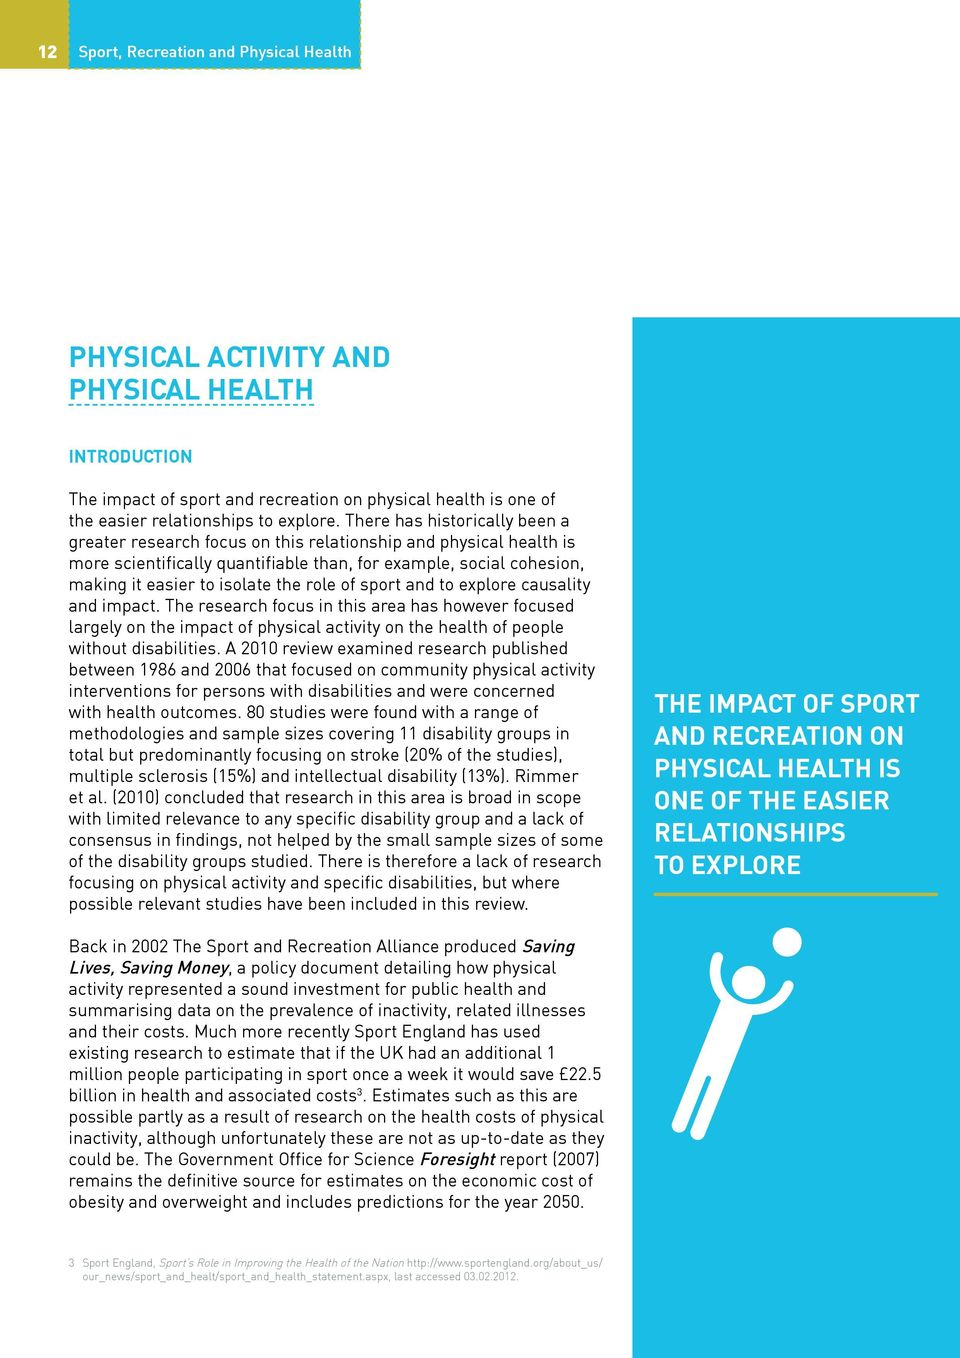 role of sport and to explore causality and impact. The research focus in this area has however focused largely on the impact of physical activity on the health of people without disabilities.